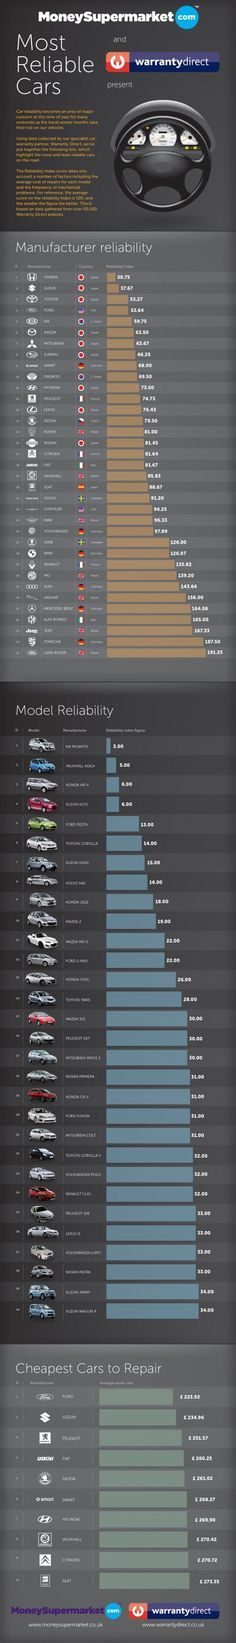 Most Reliable Cars infographic. So happy I just bought a Honda!!!!!  I love my CR-V.